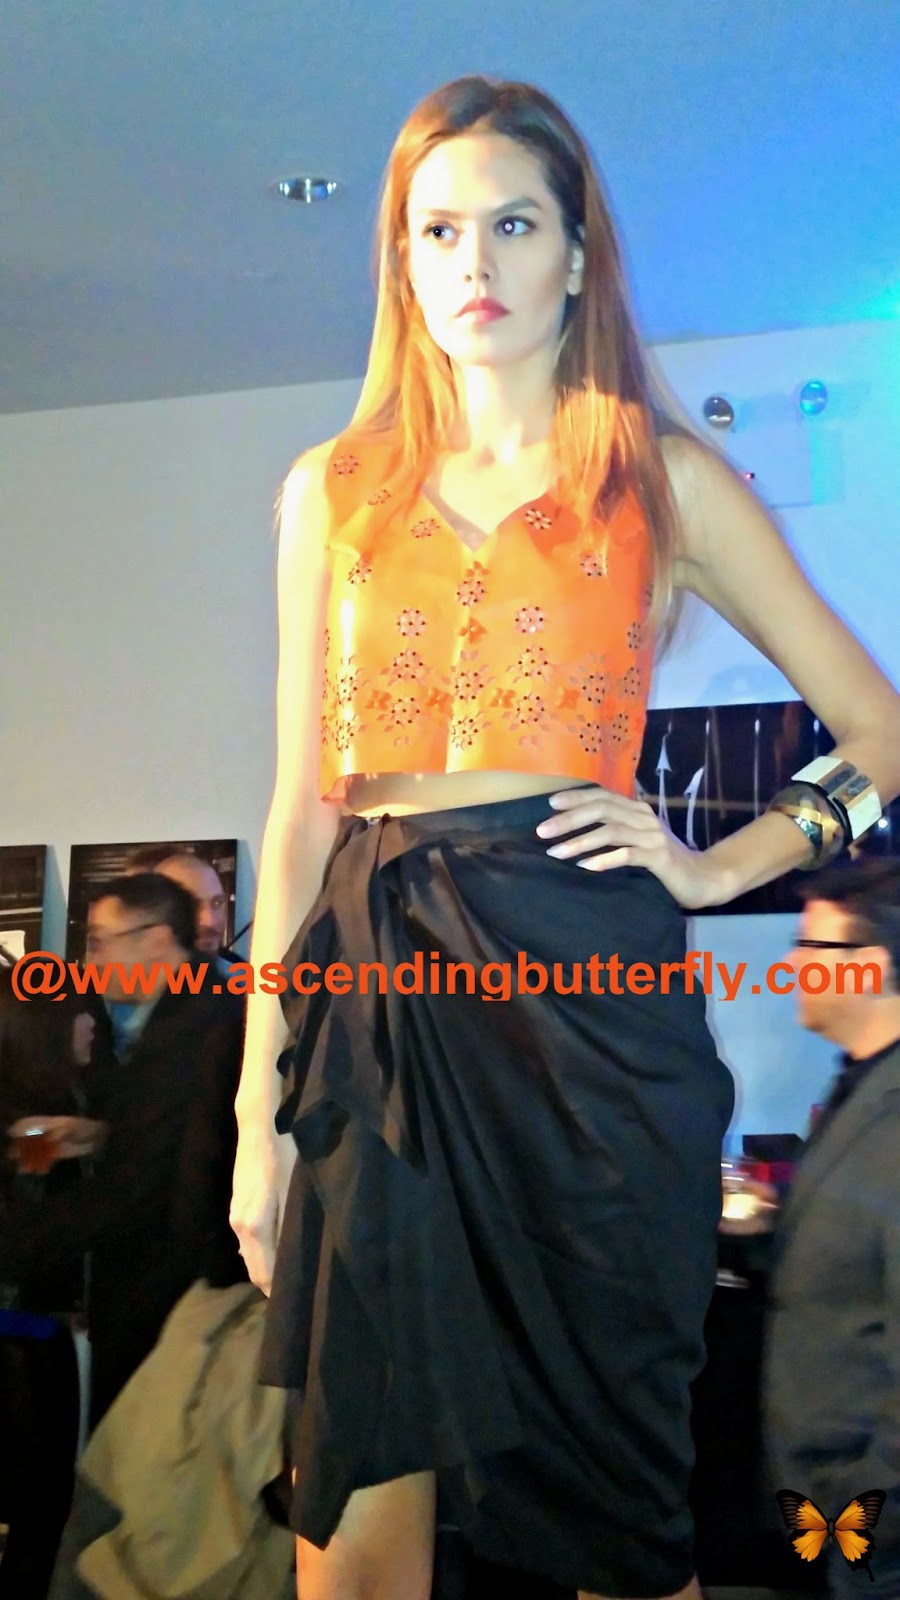 Gnossem Fashion Preview Maserati NYC Showroom February 2013, Tops, Blouse, Skirt